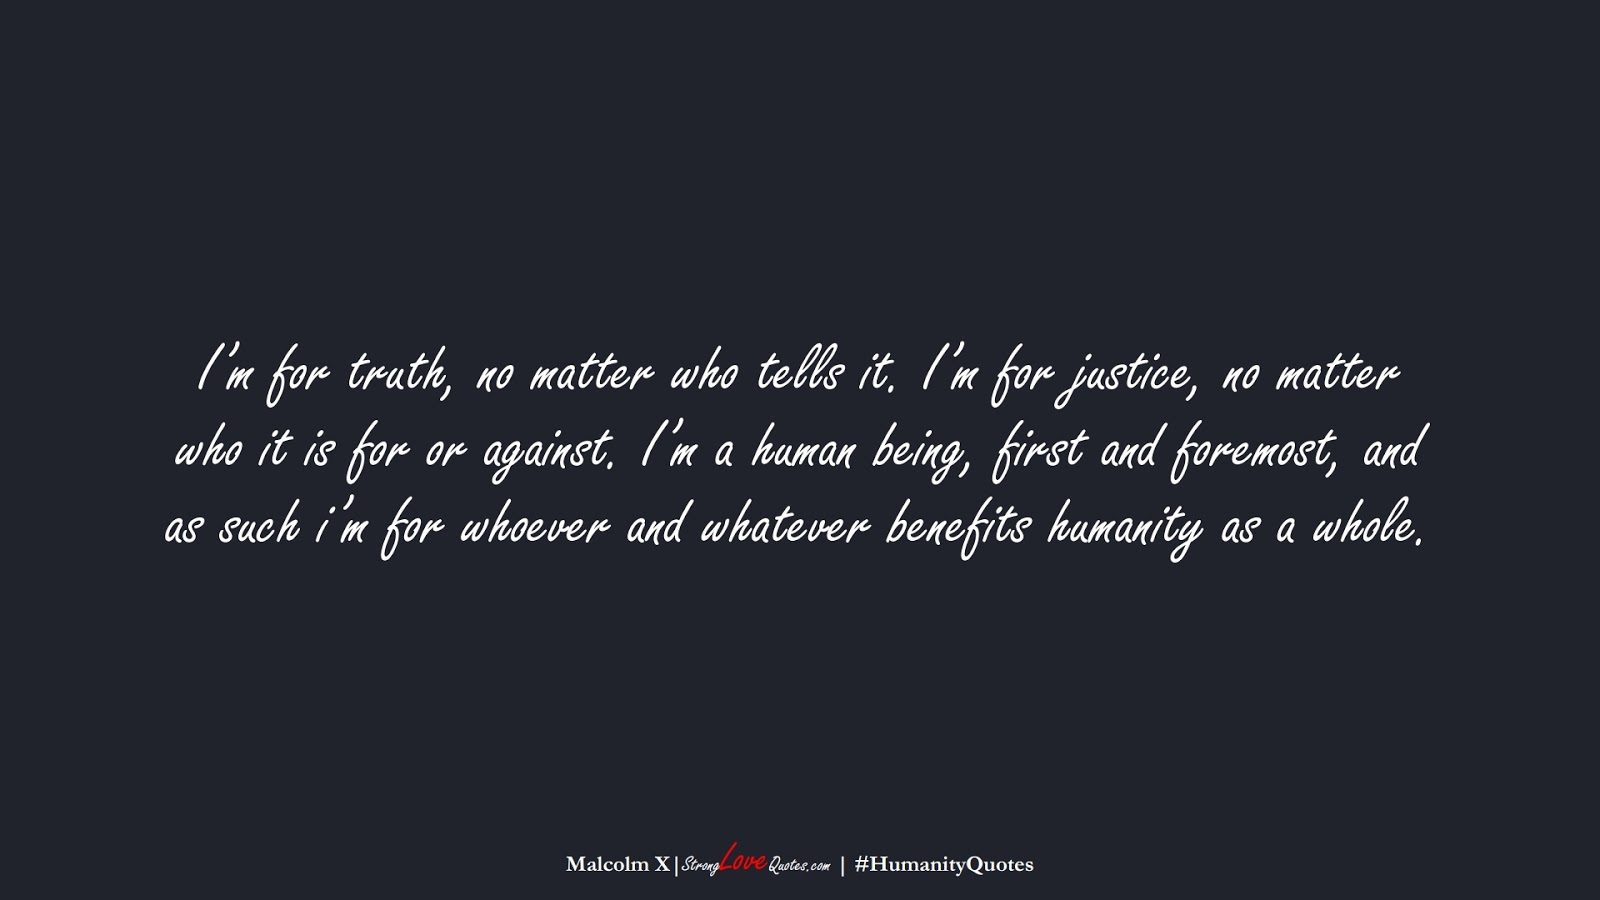 I'm for truth, no matter who tells it. I'm for justice, no matter who it is for or against. I'm a human being, first and foremost, and as such i'm for whoever and whatever benefits humanity as a whole. (Malcolm X);  #HumanityQuotes